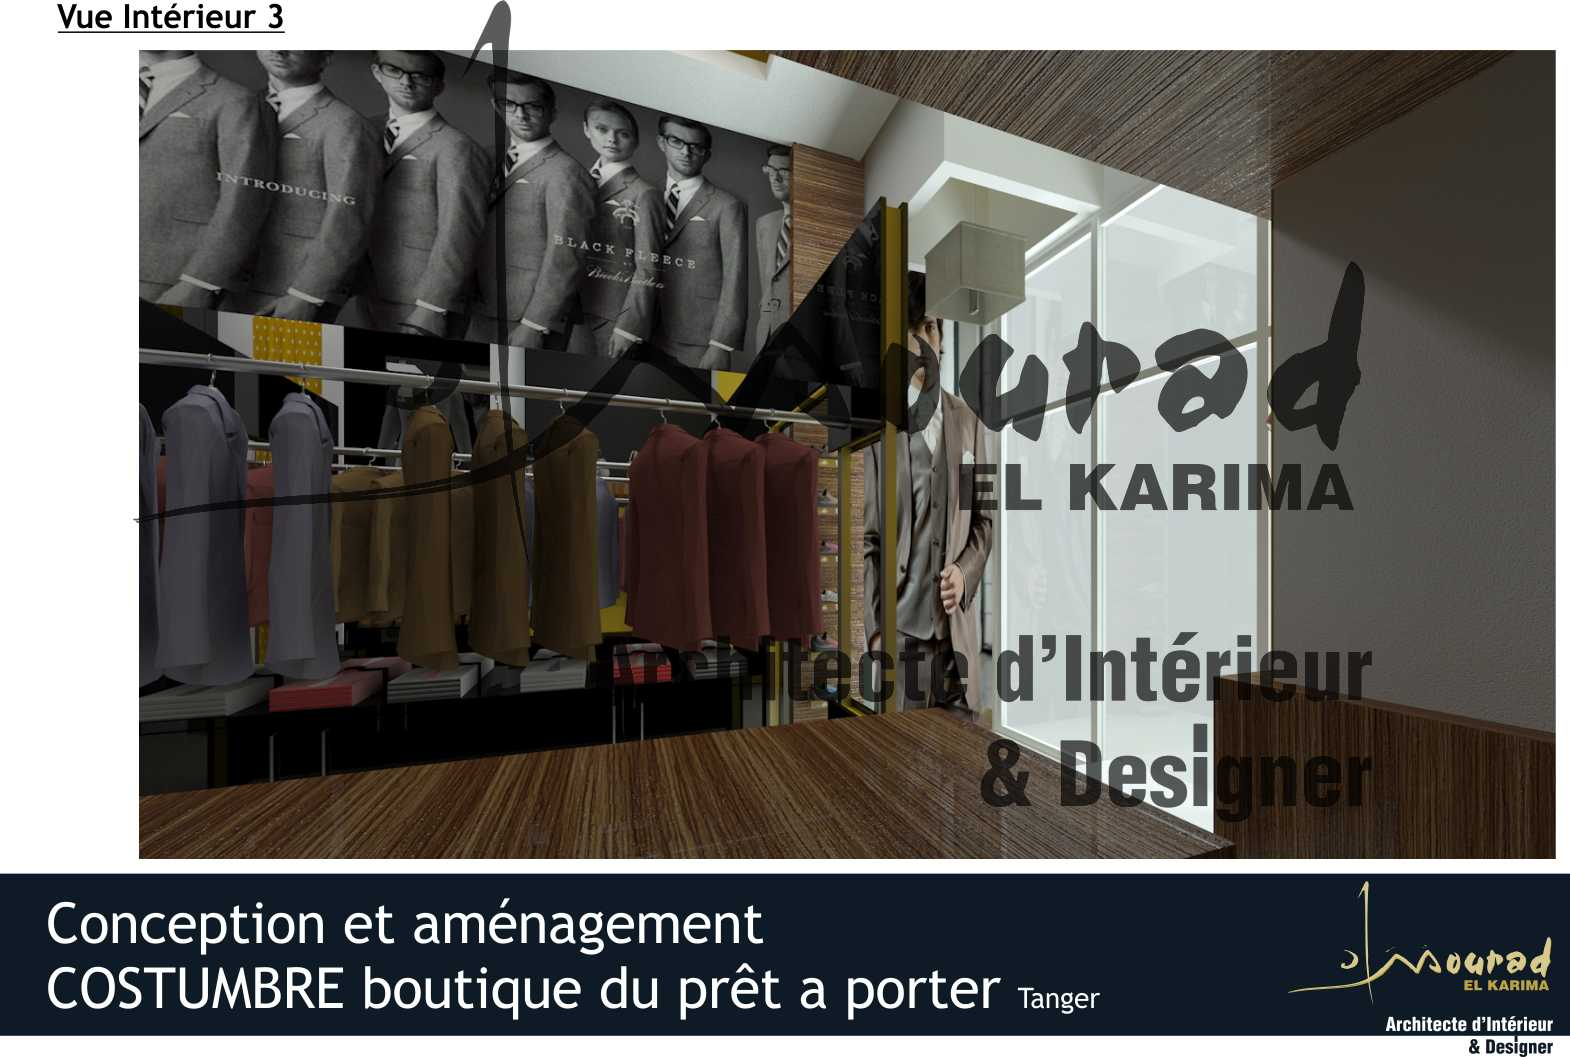 costumbre boutique de pr t a porter tanger mourad el karima architecte d 39 interieur designer. Black Bedroom Furniture Sets. Home Design Ideas